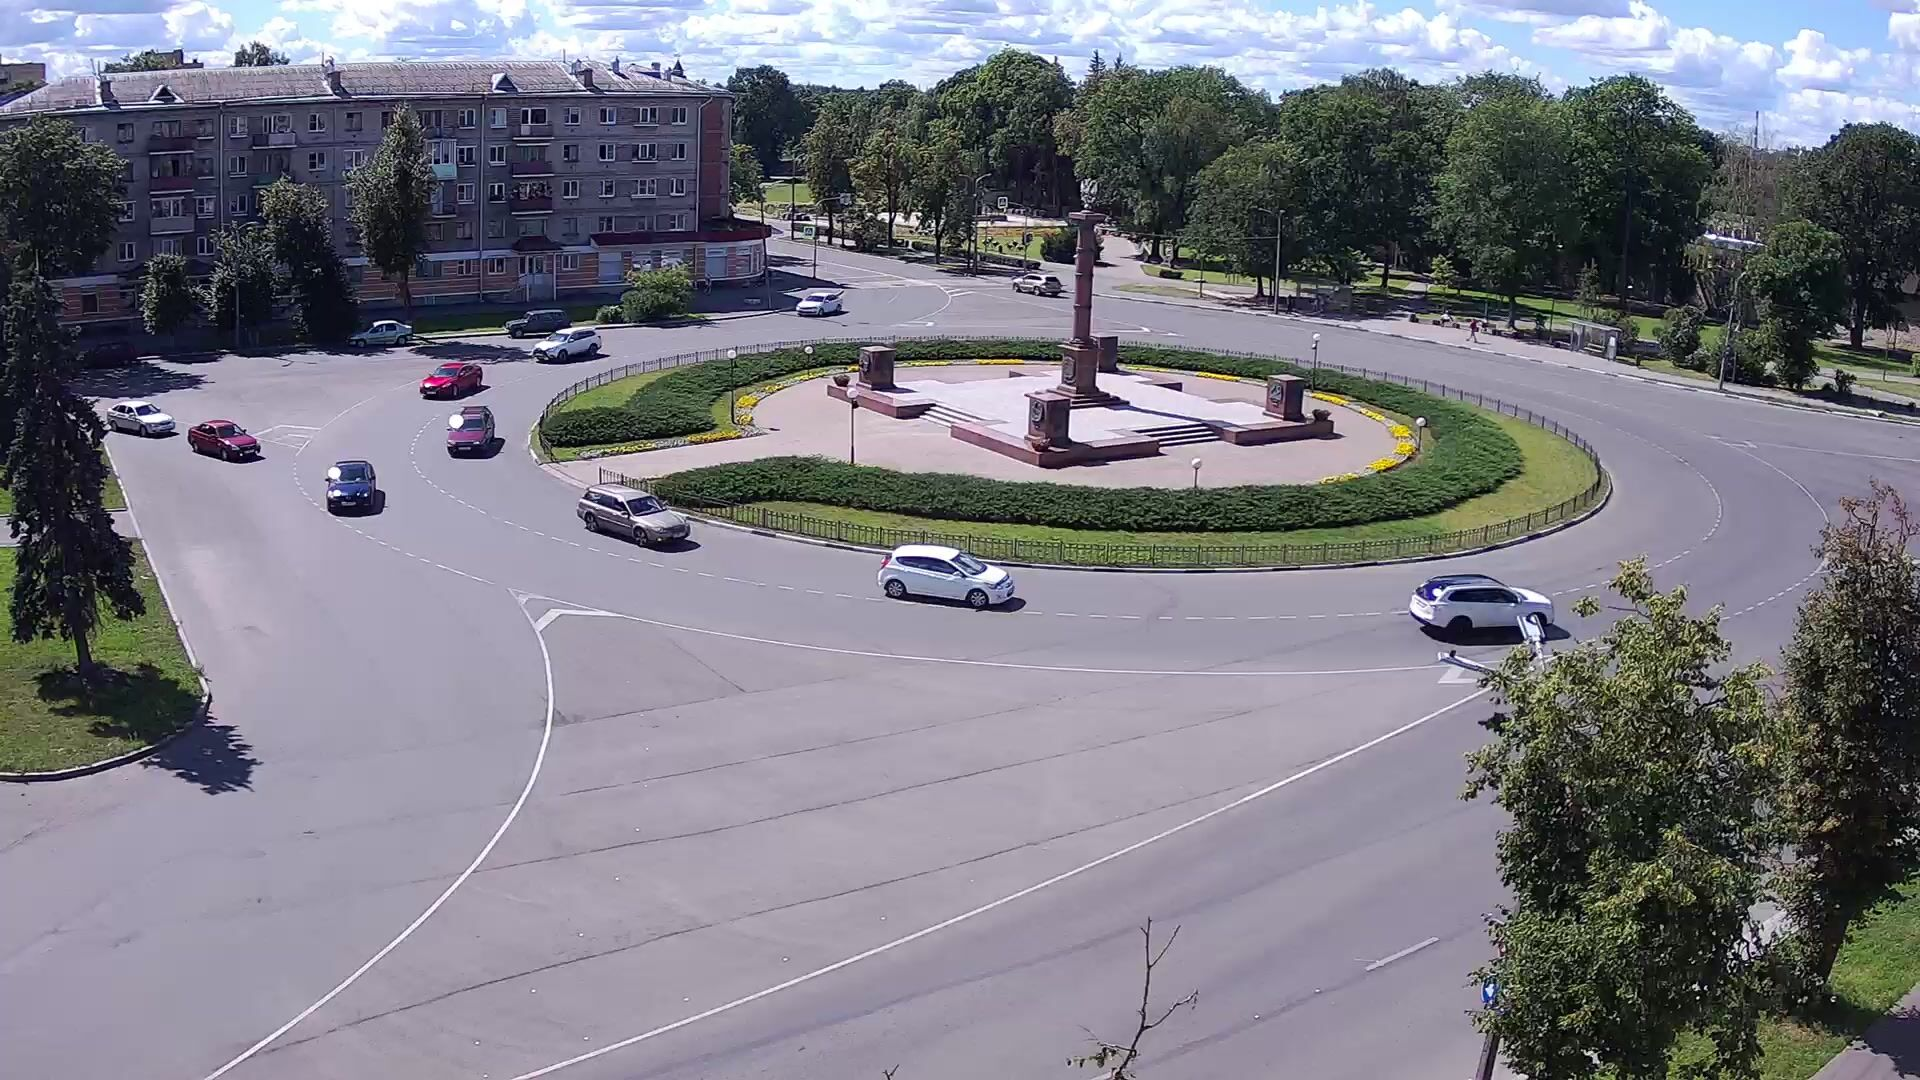 Webcam Privokzalnaya ploschad, Pskov, Russia